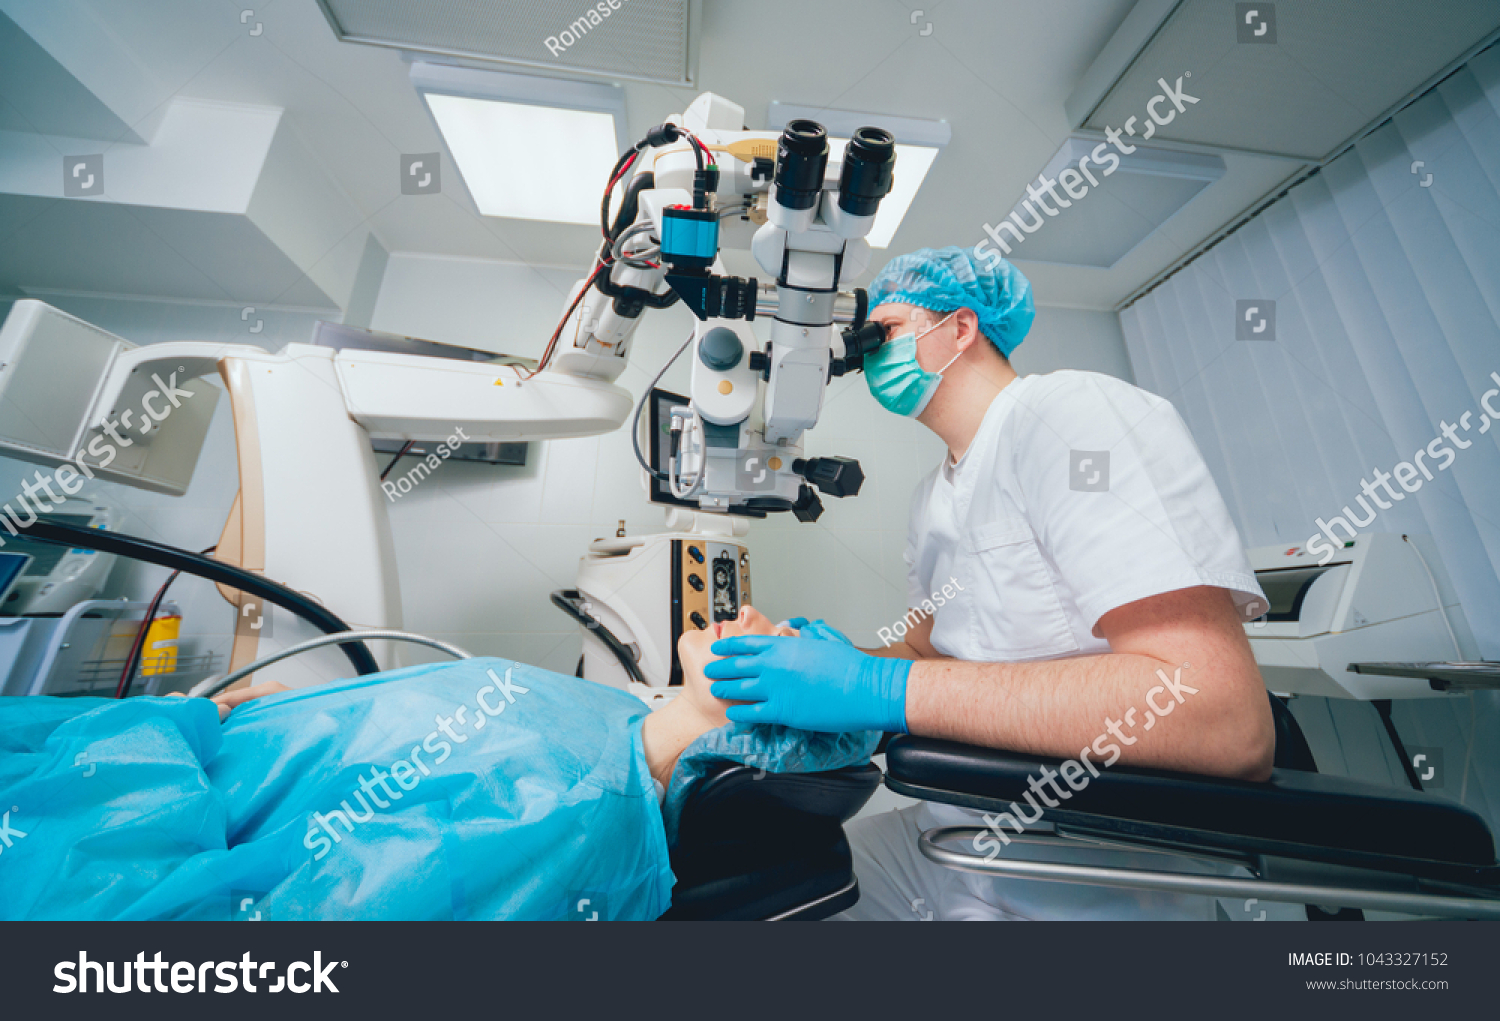 f50786d2866 Eye surgery. A patient and surgeon in the operating room during ophthalmic  surgery. Patient